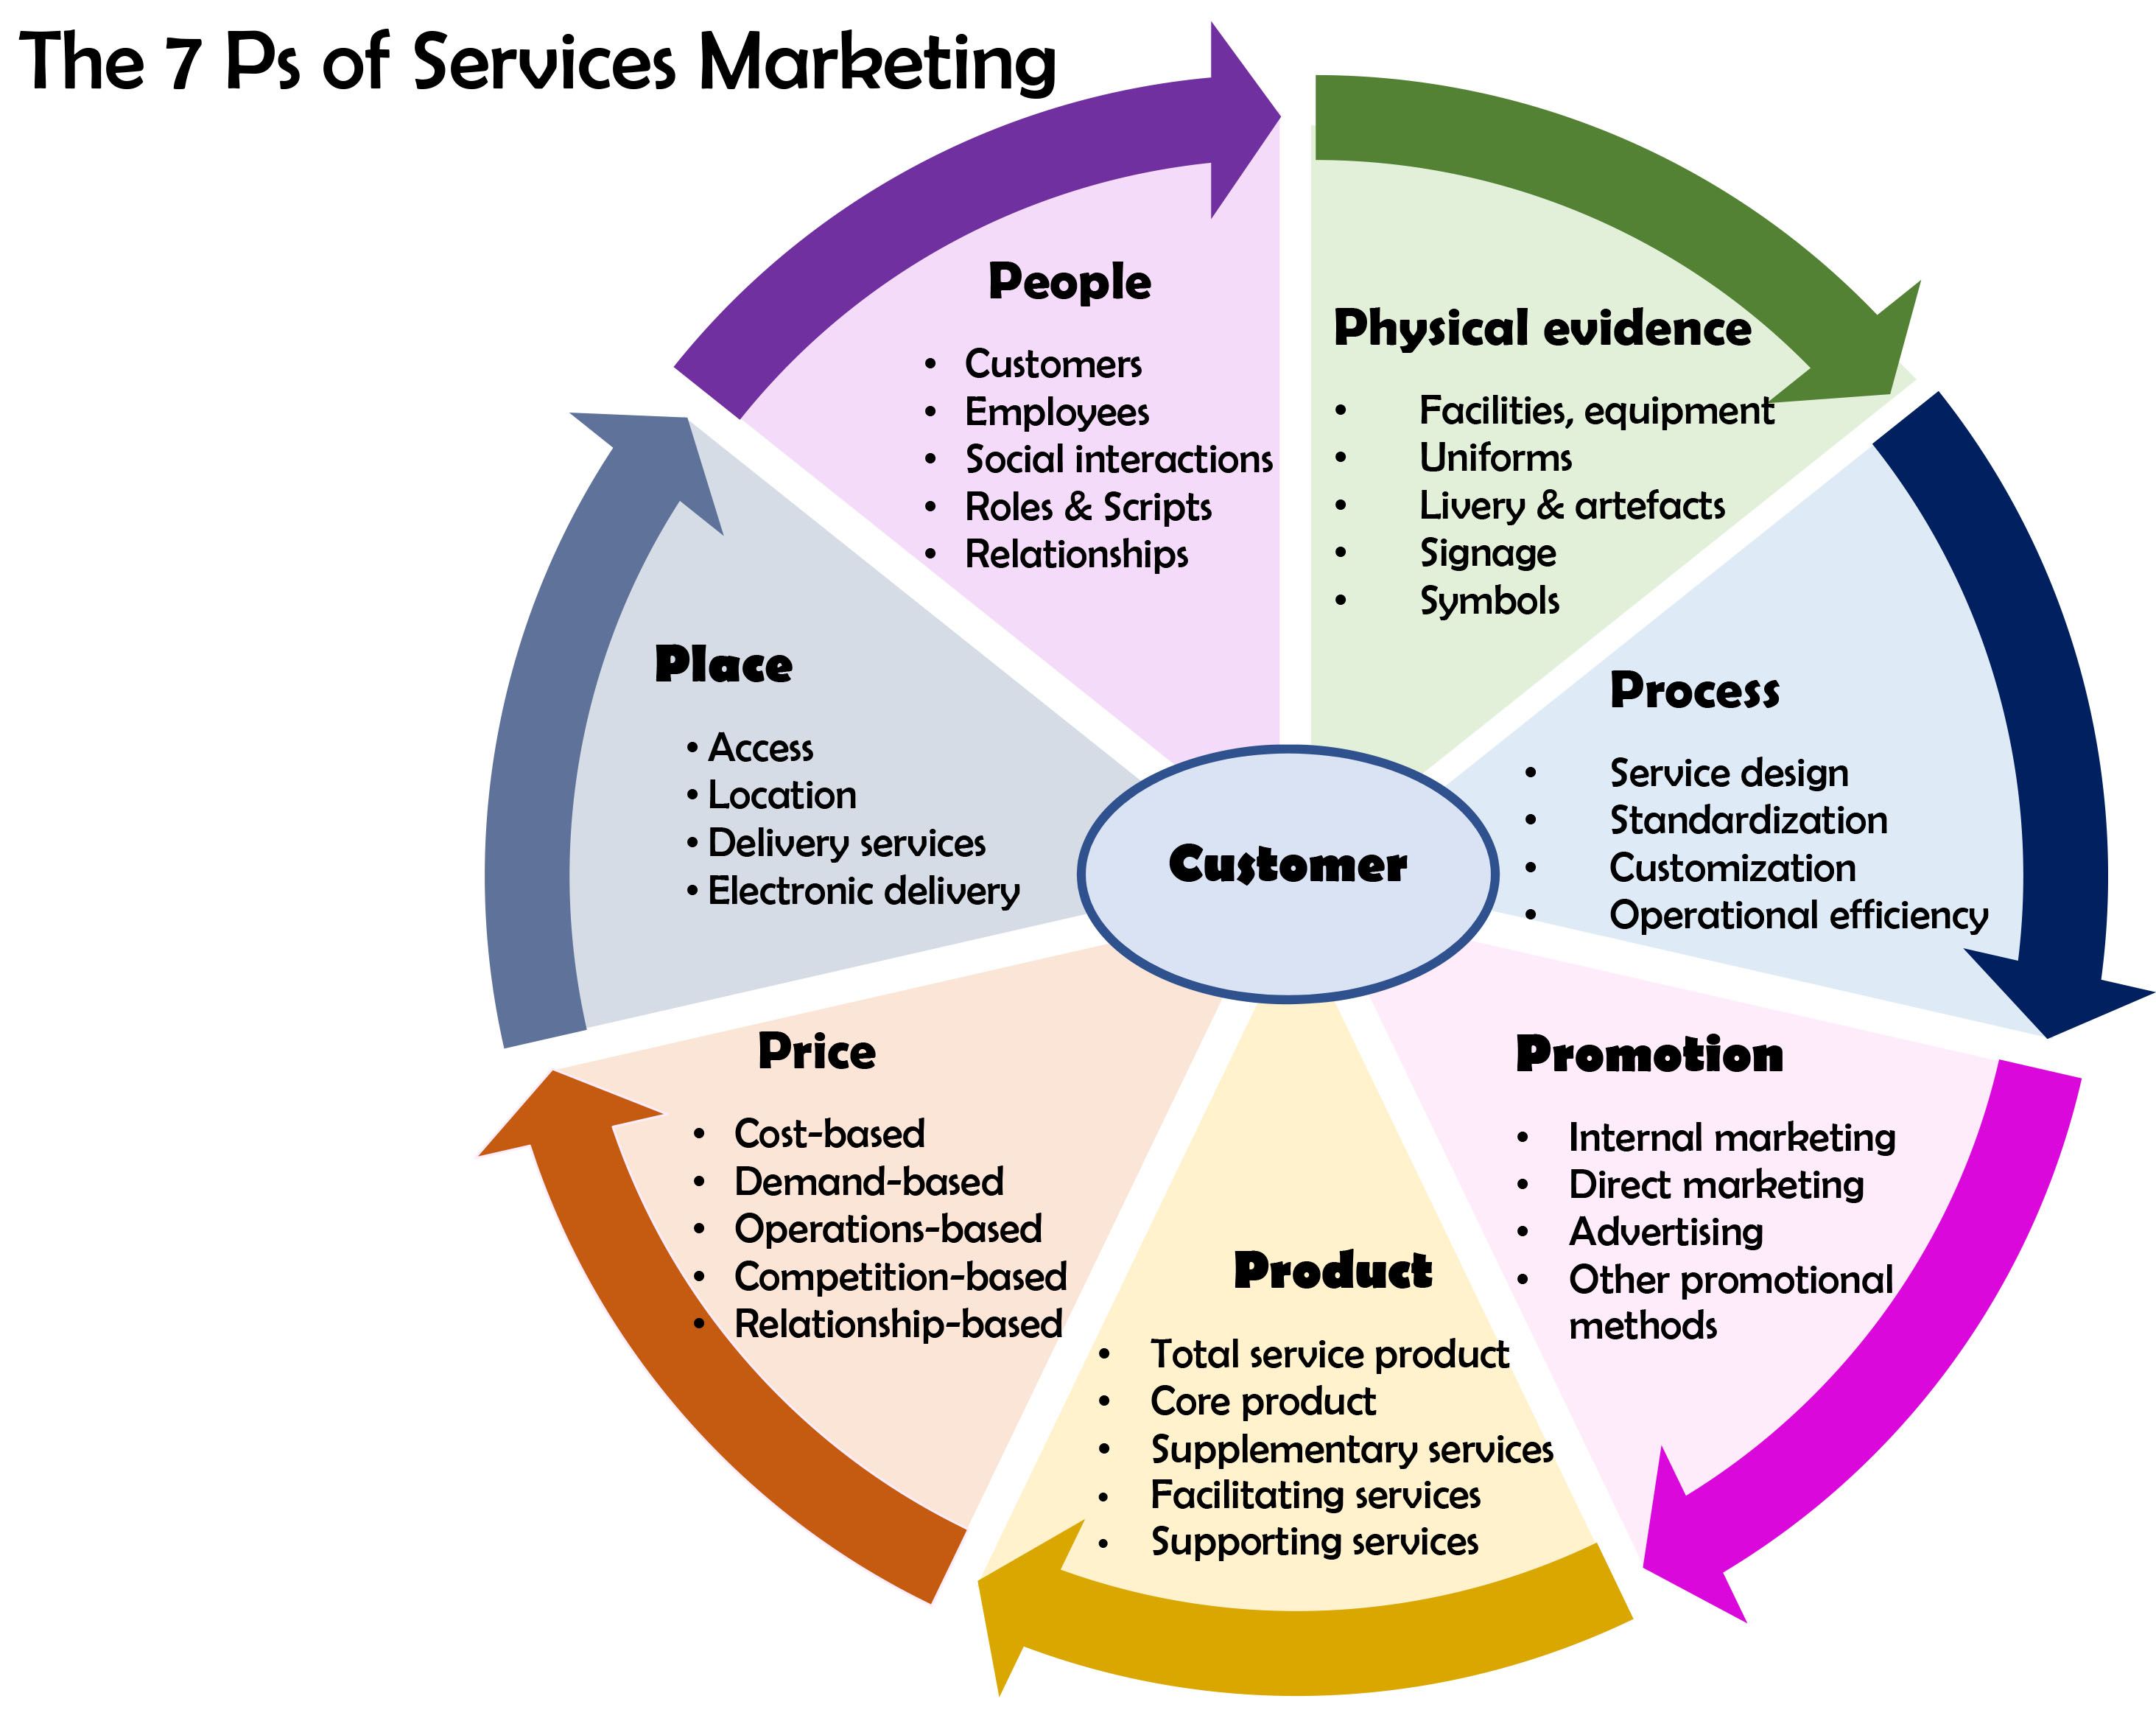 Services marketing wikipedia expanded and modified marketing mixedit malvernweather